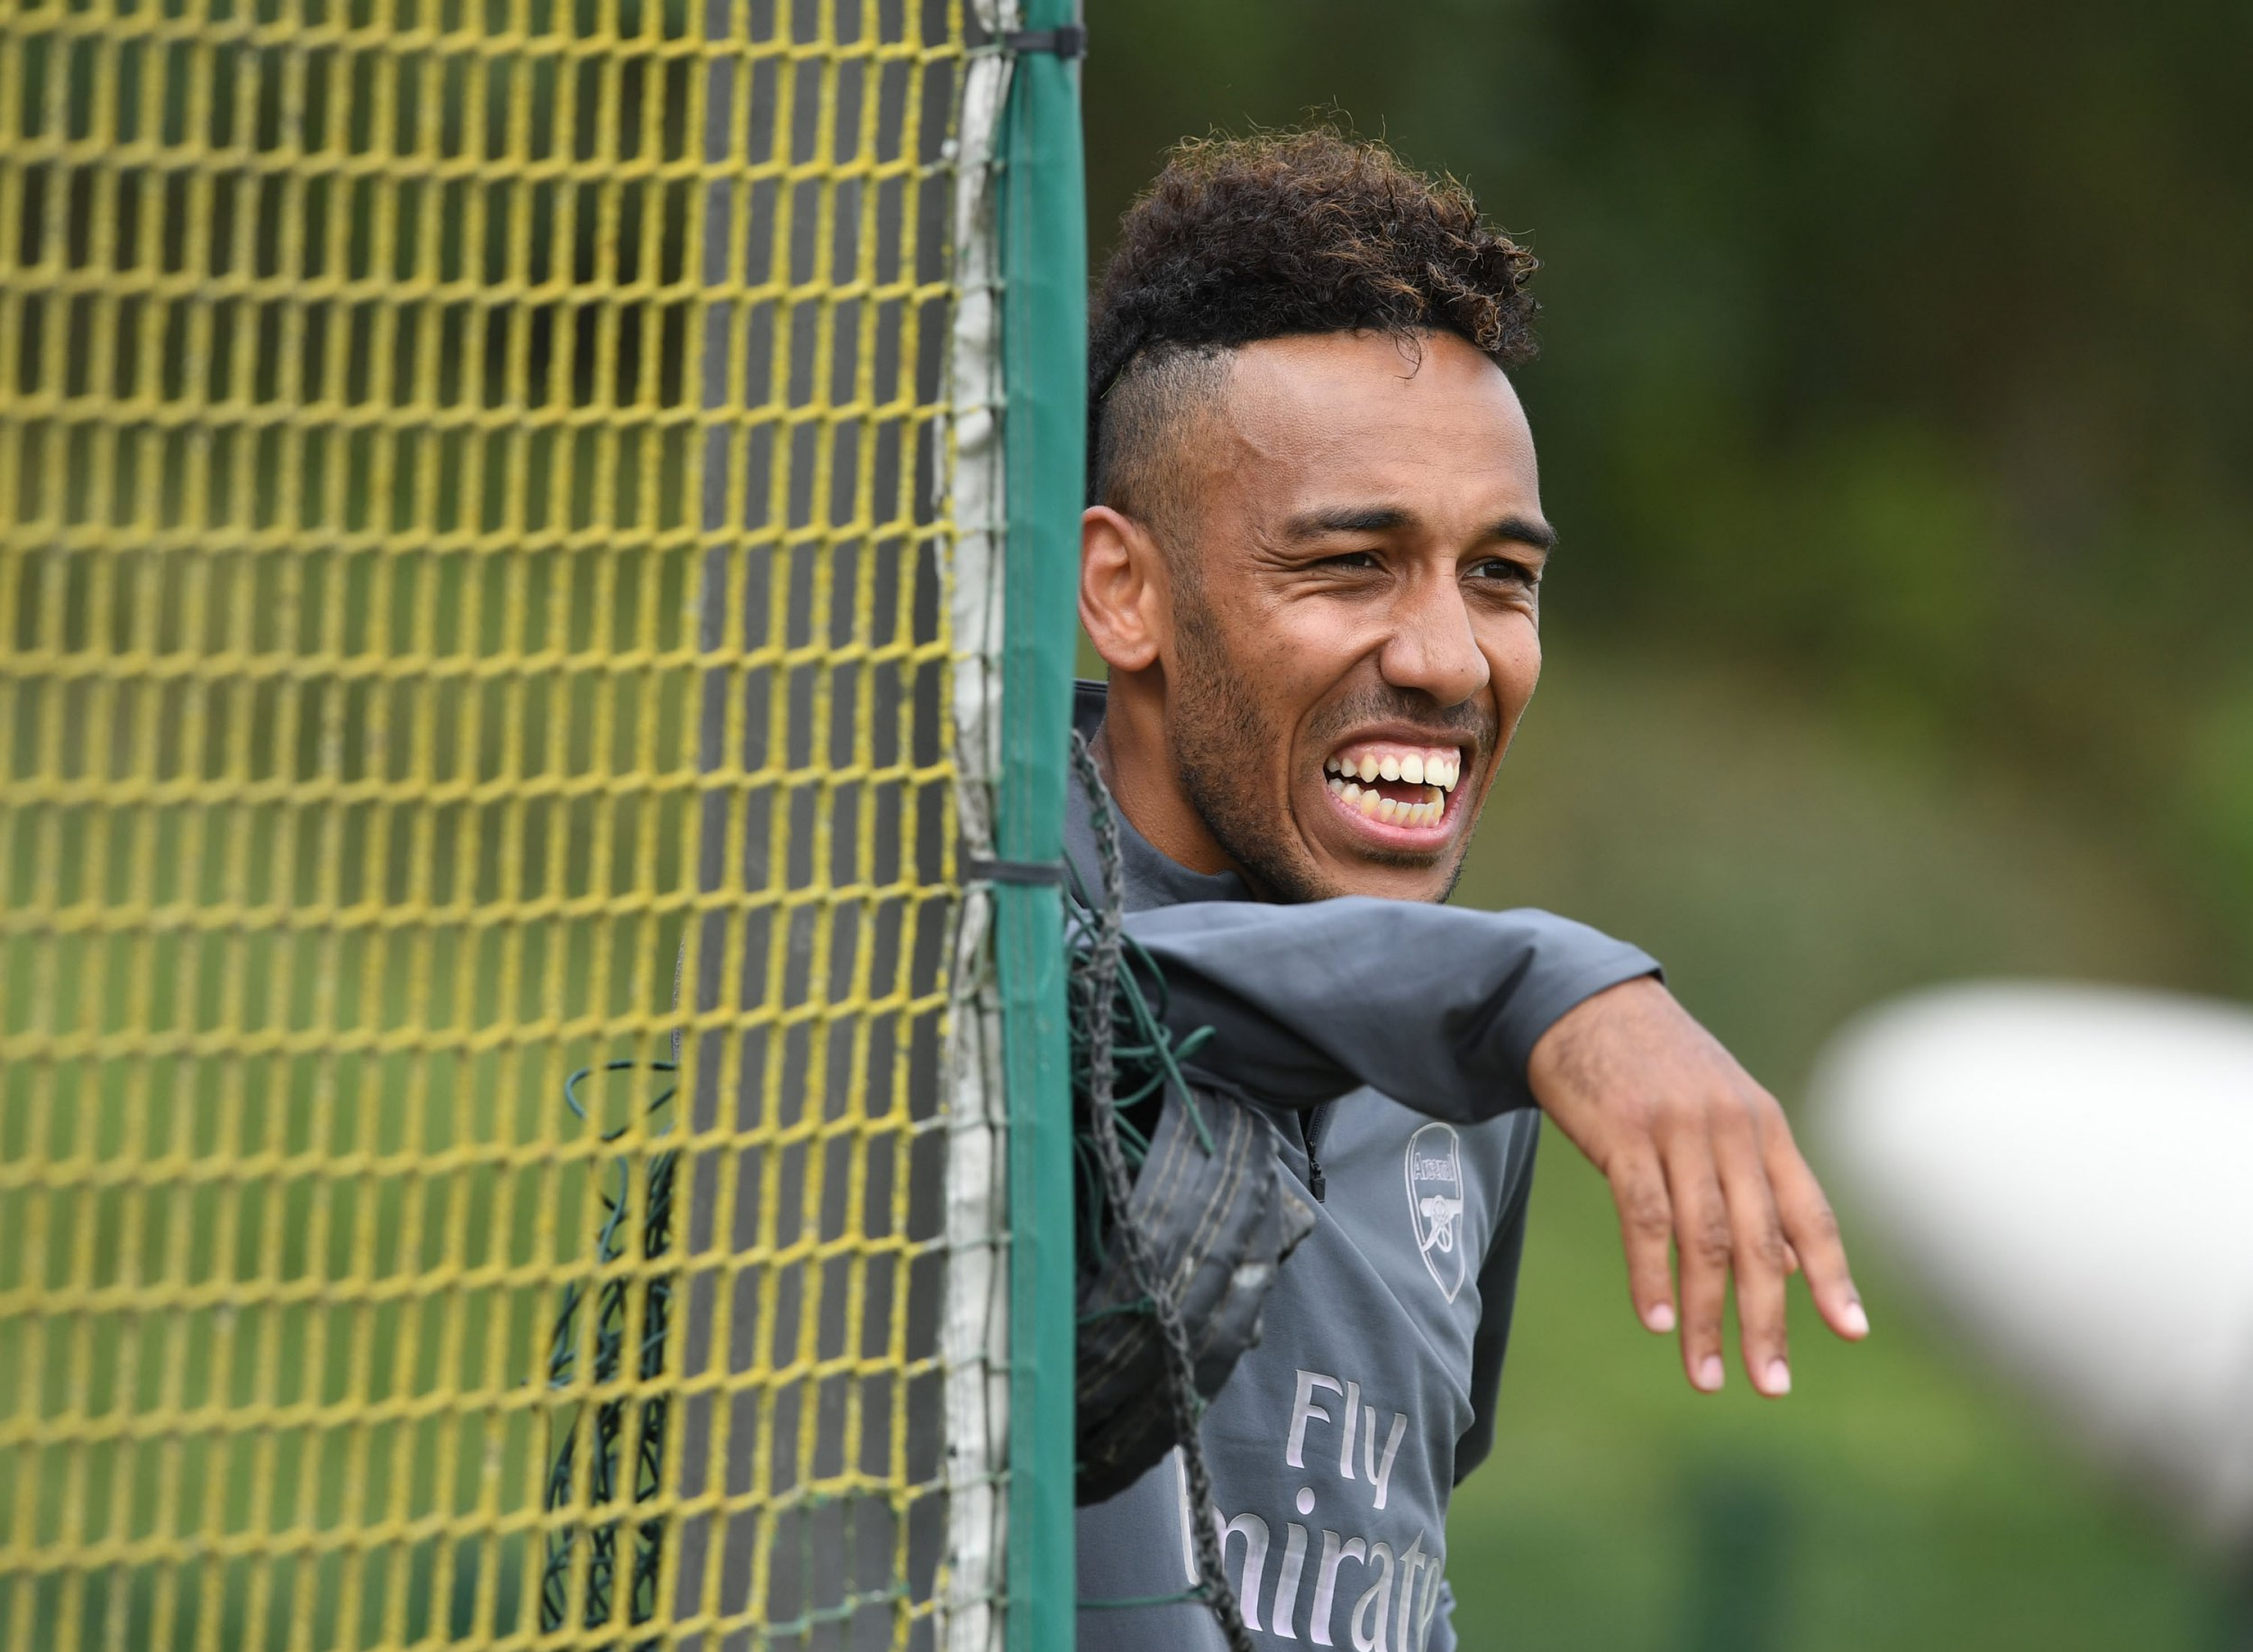 ST ALBANS, ENGLAND - JULY 11: Pierre-Emerick Aubameyang of Arsenal during a training session at London Colney on July 11, 2018 in St Albans, England. (Photo by Stuart MacFarlane/Arsenal FC via Getty Images)